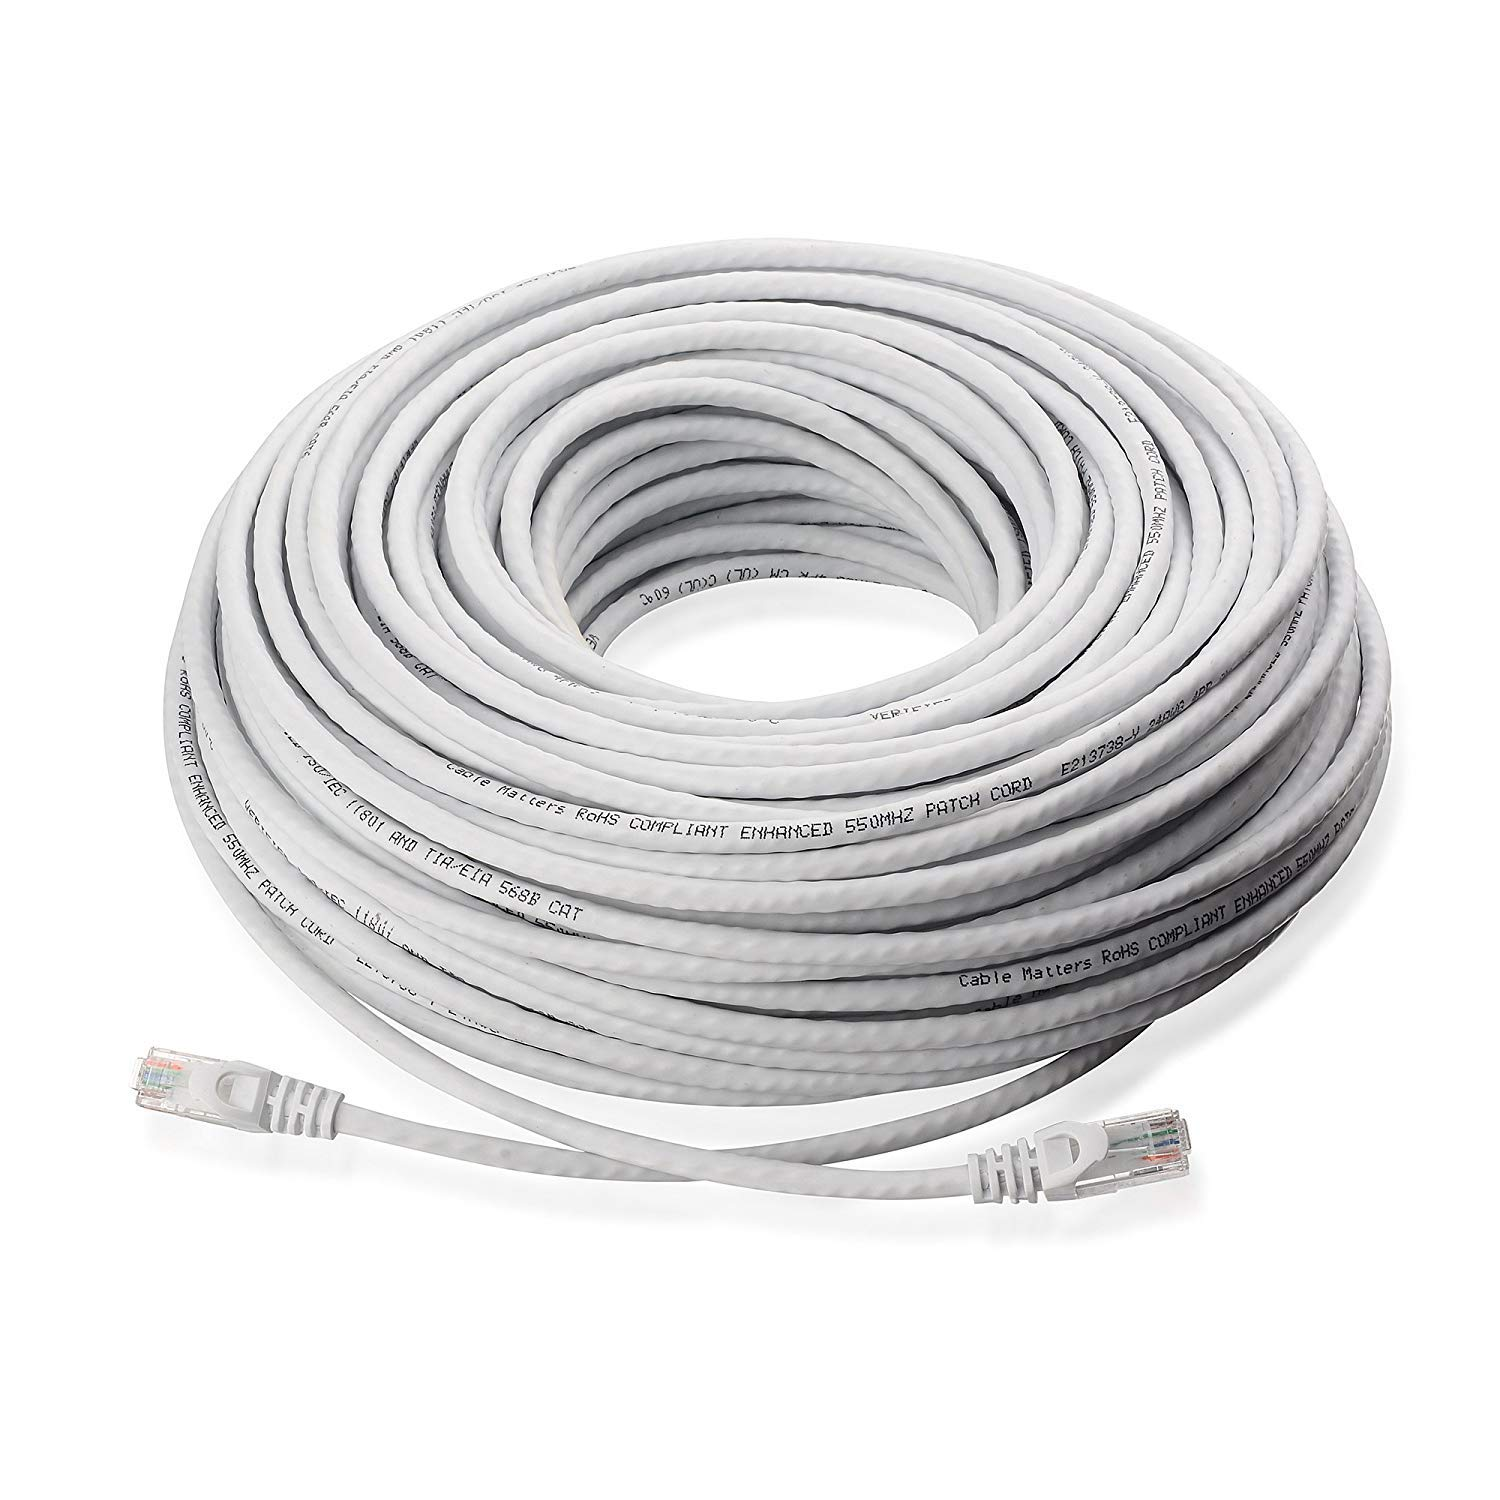 Lknewtrend 150FT Feet CAT5 Cat5e Ethernet Patch Cable - RJ45 Computer Network Internet Wire PoE Switch Cord